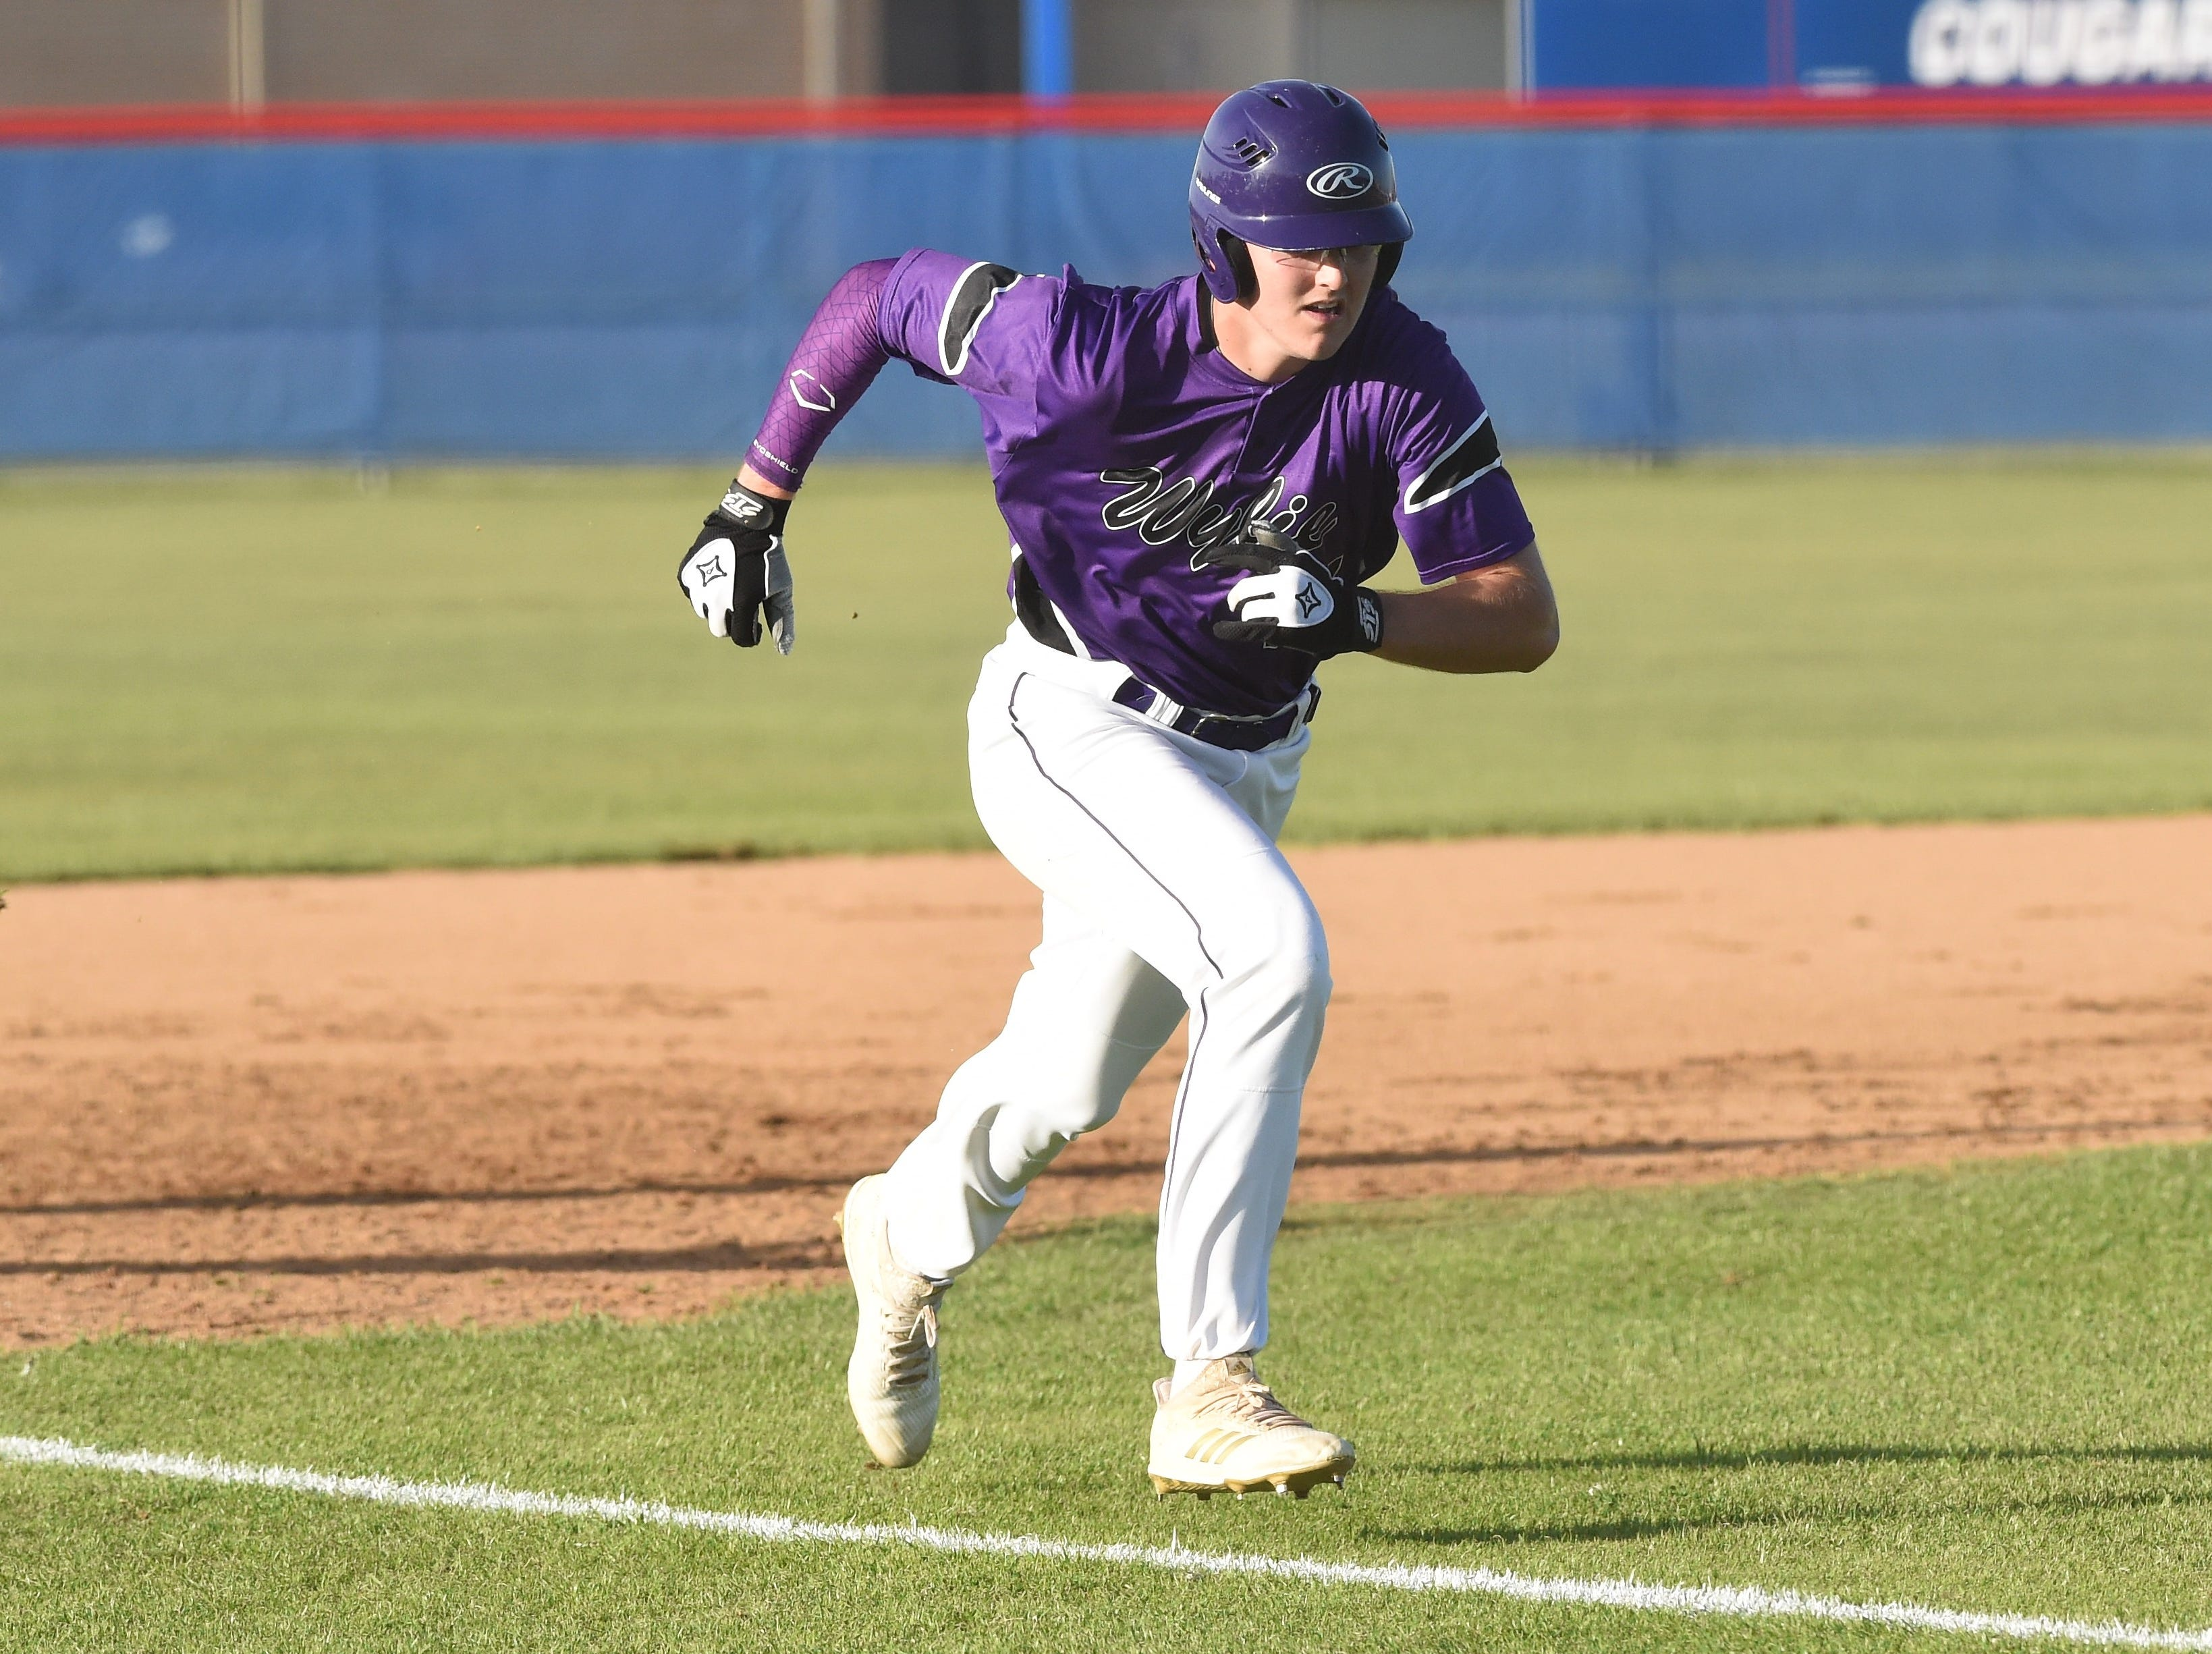 Wylie's Kanon Doby (17) runs down the third-base line to score against Cooper at Cougar Field on Tuesday, April 9, 2019. Doby had two hits, an RBI and scored in the Bulldogs 11-5 win.